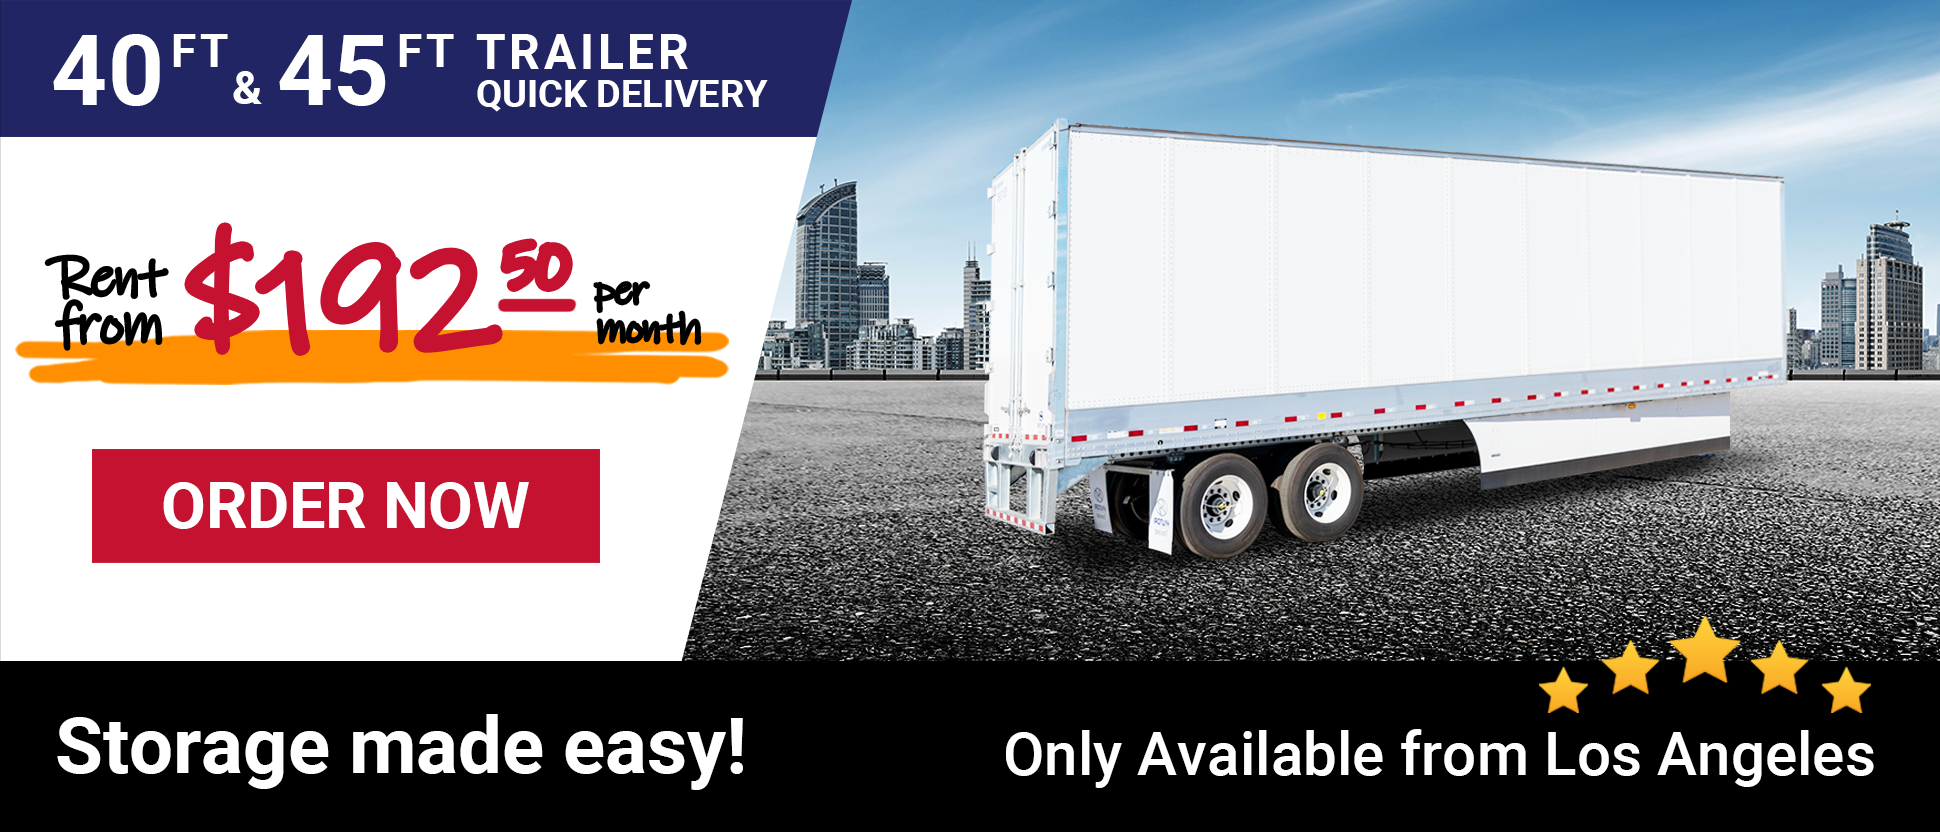 Storage Trailers Rent from $192.50